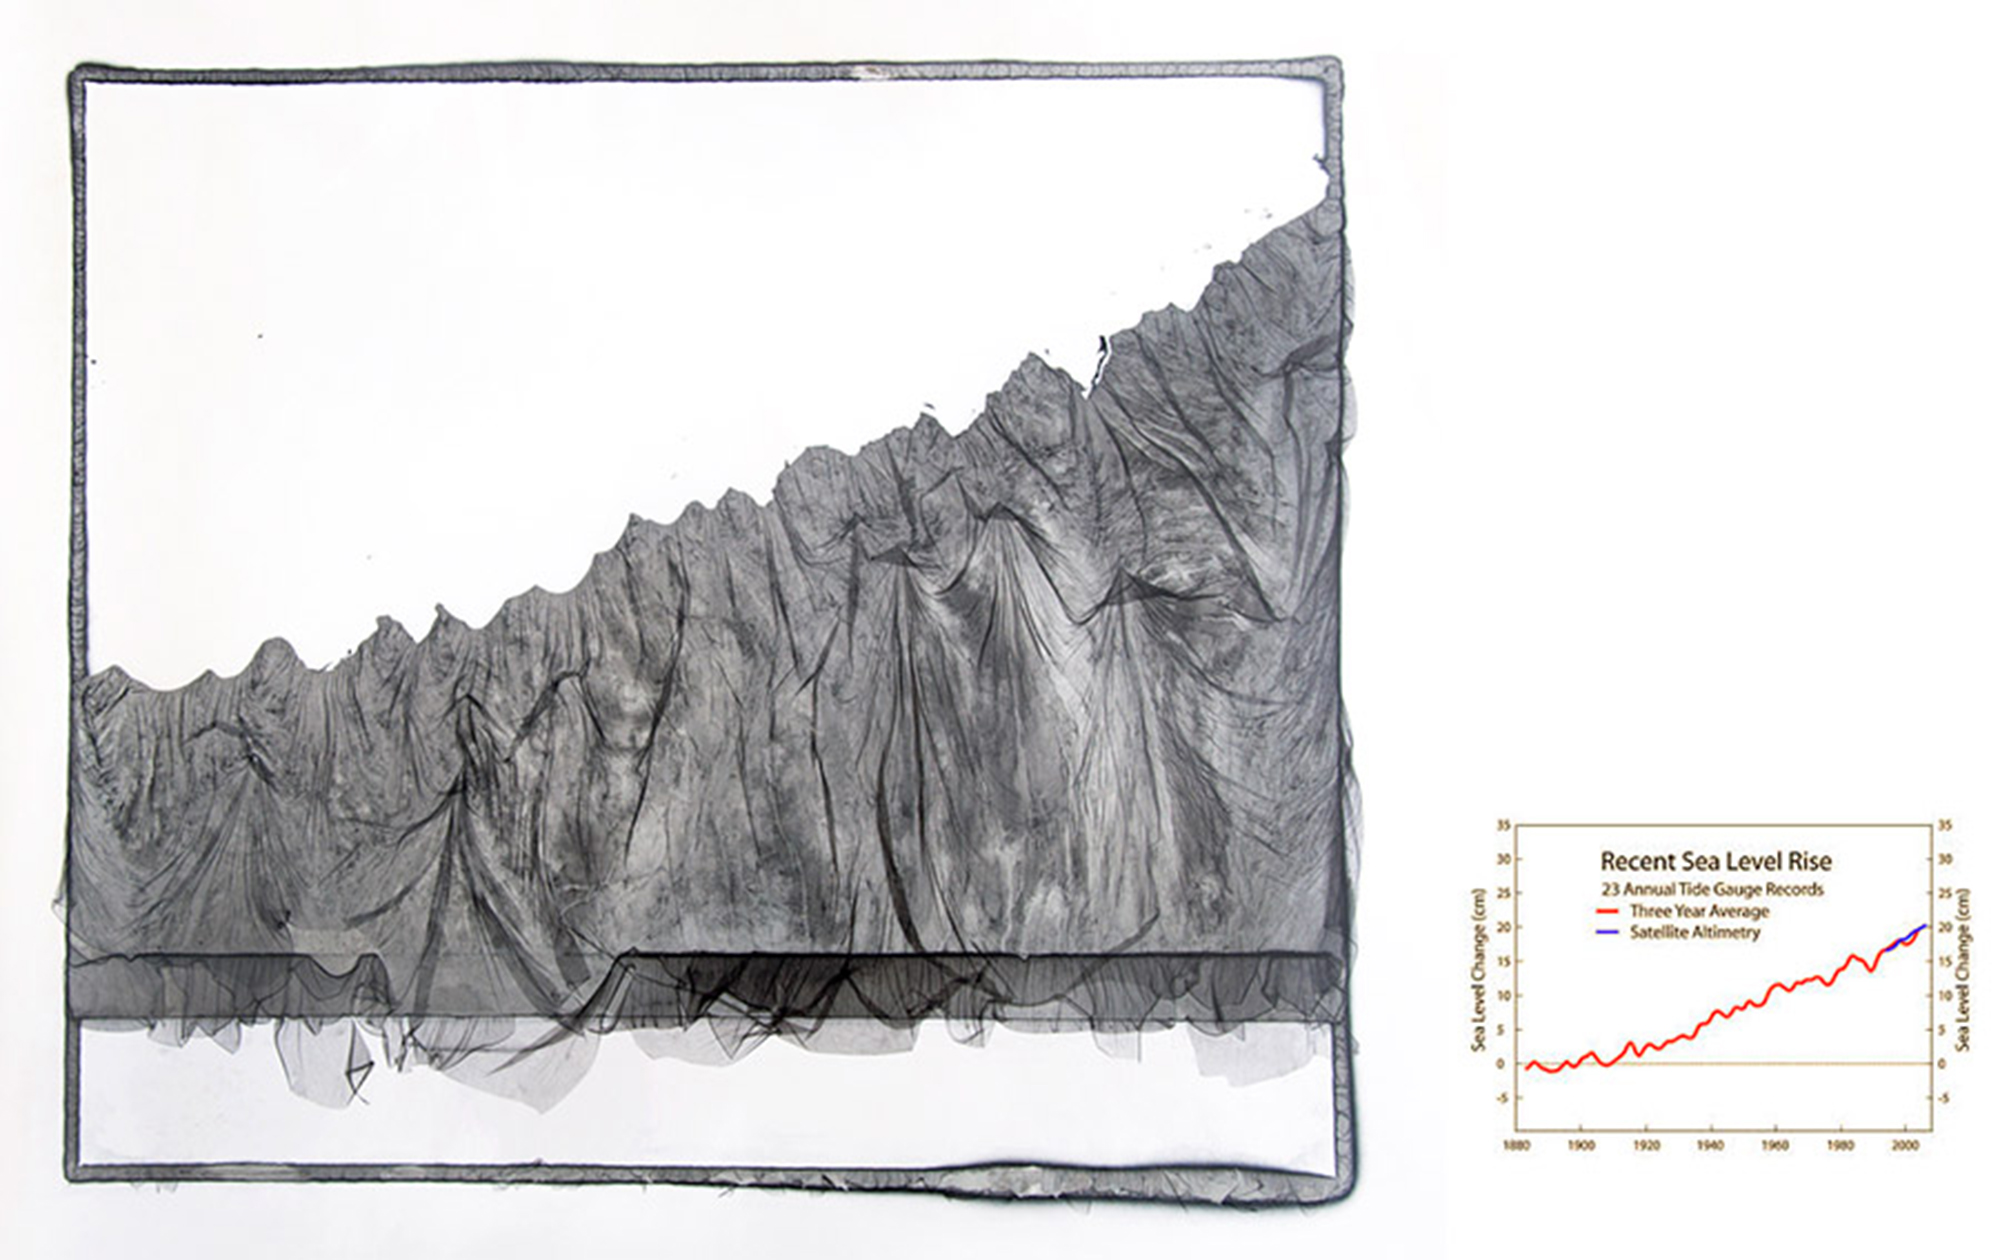 8 - mdli-29 - Recent sea level rise - from the series MOUNTAINS OF UNCERTAINTY.jpg